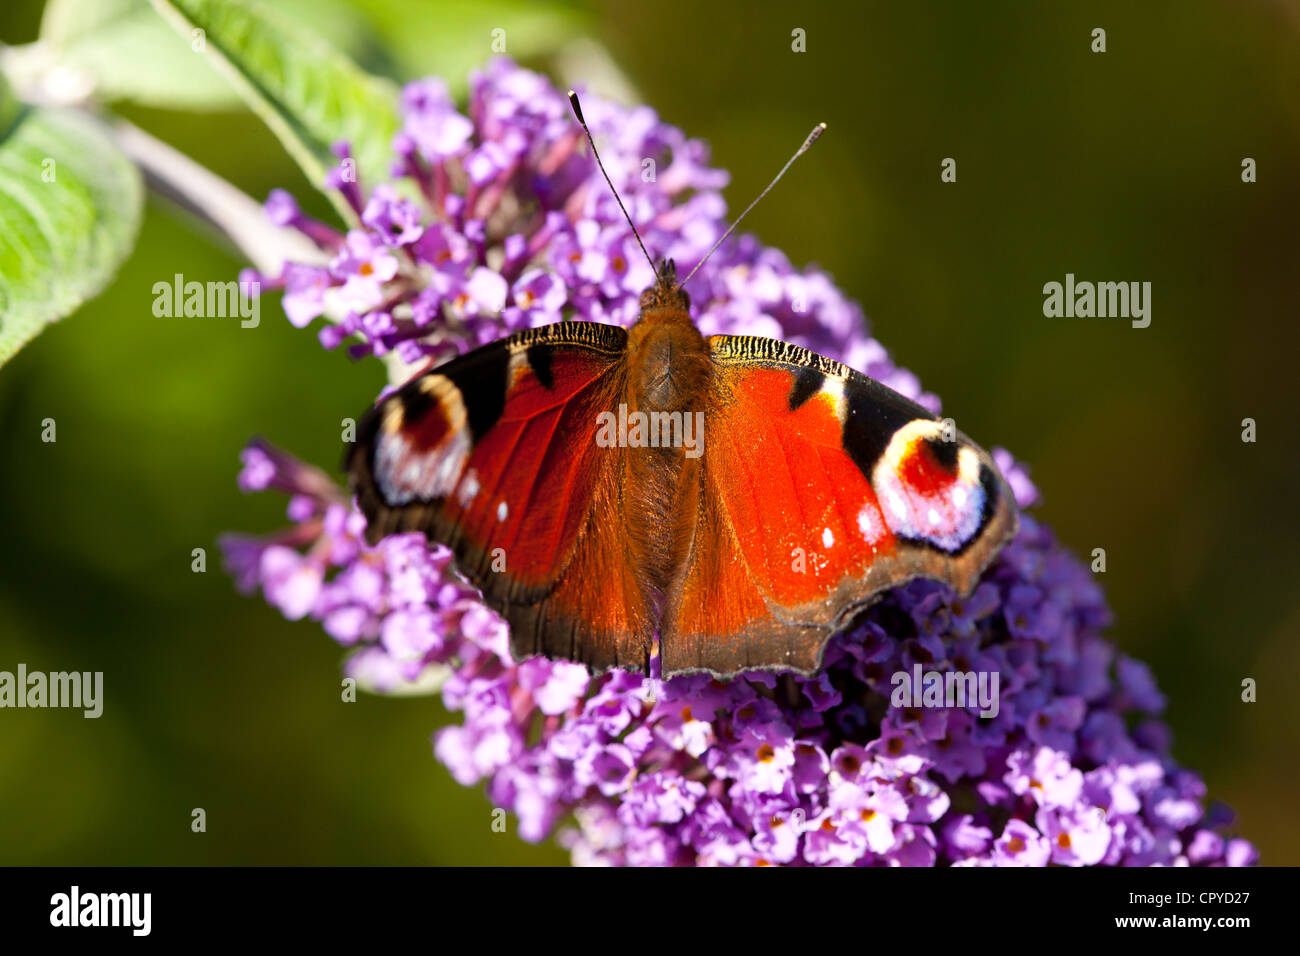 Peacock butterfly, Inachis io, feeding on nectar from Buddleia Davidii, Buddleja Davidii, flower in English country - Stock Image